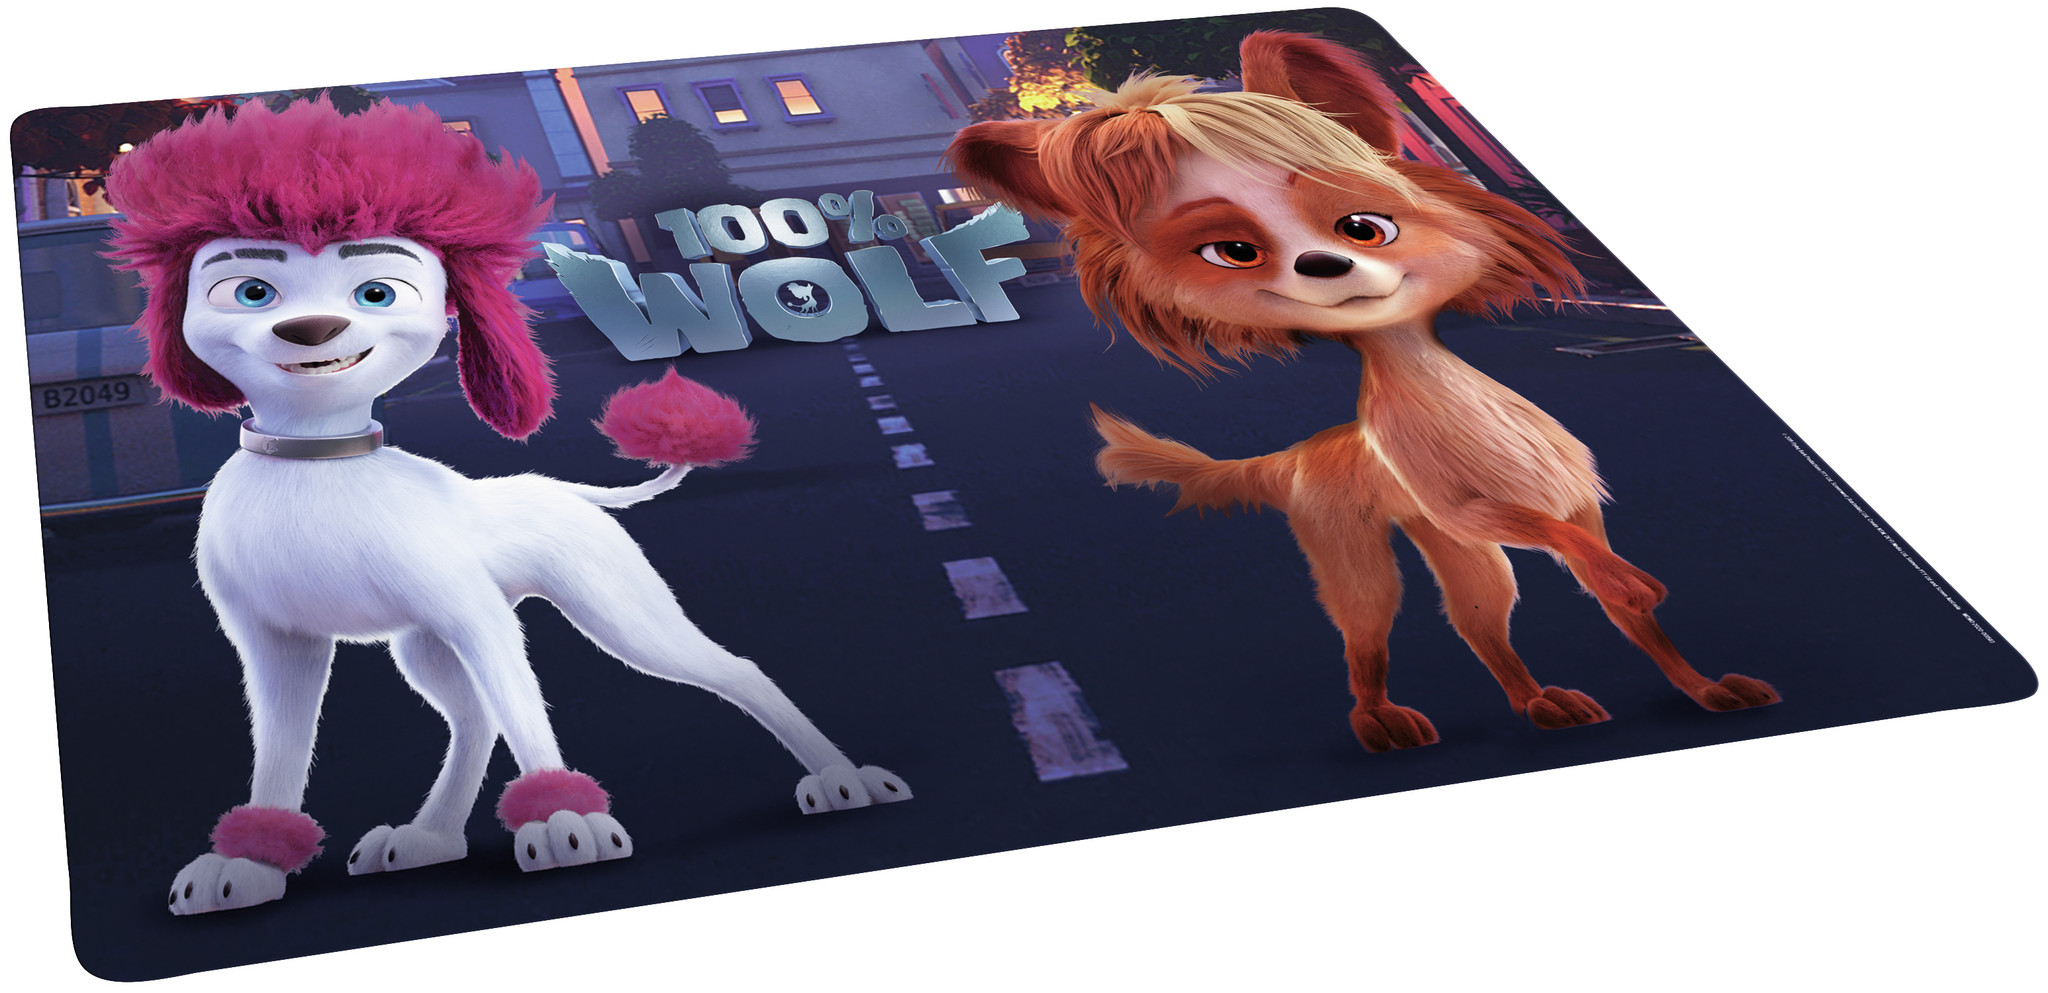 Placemat 100% Wolf